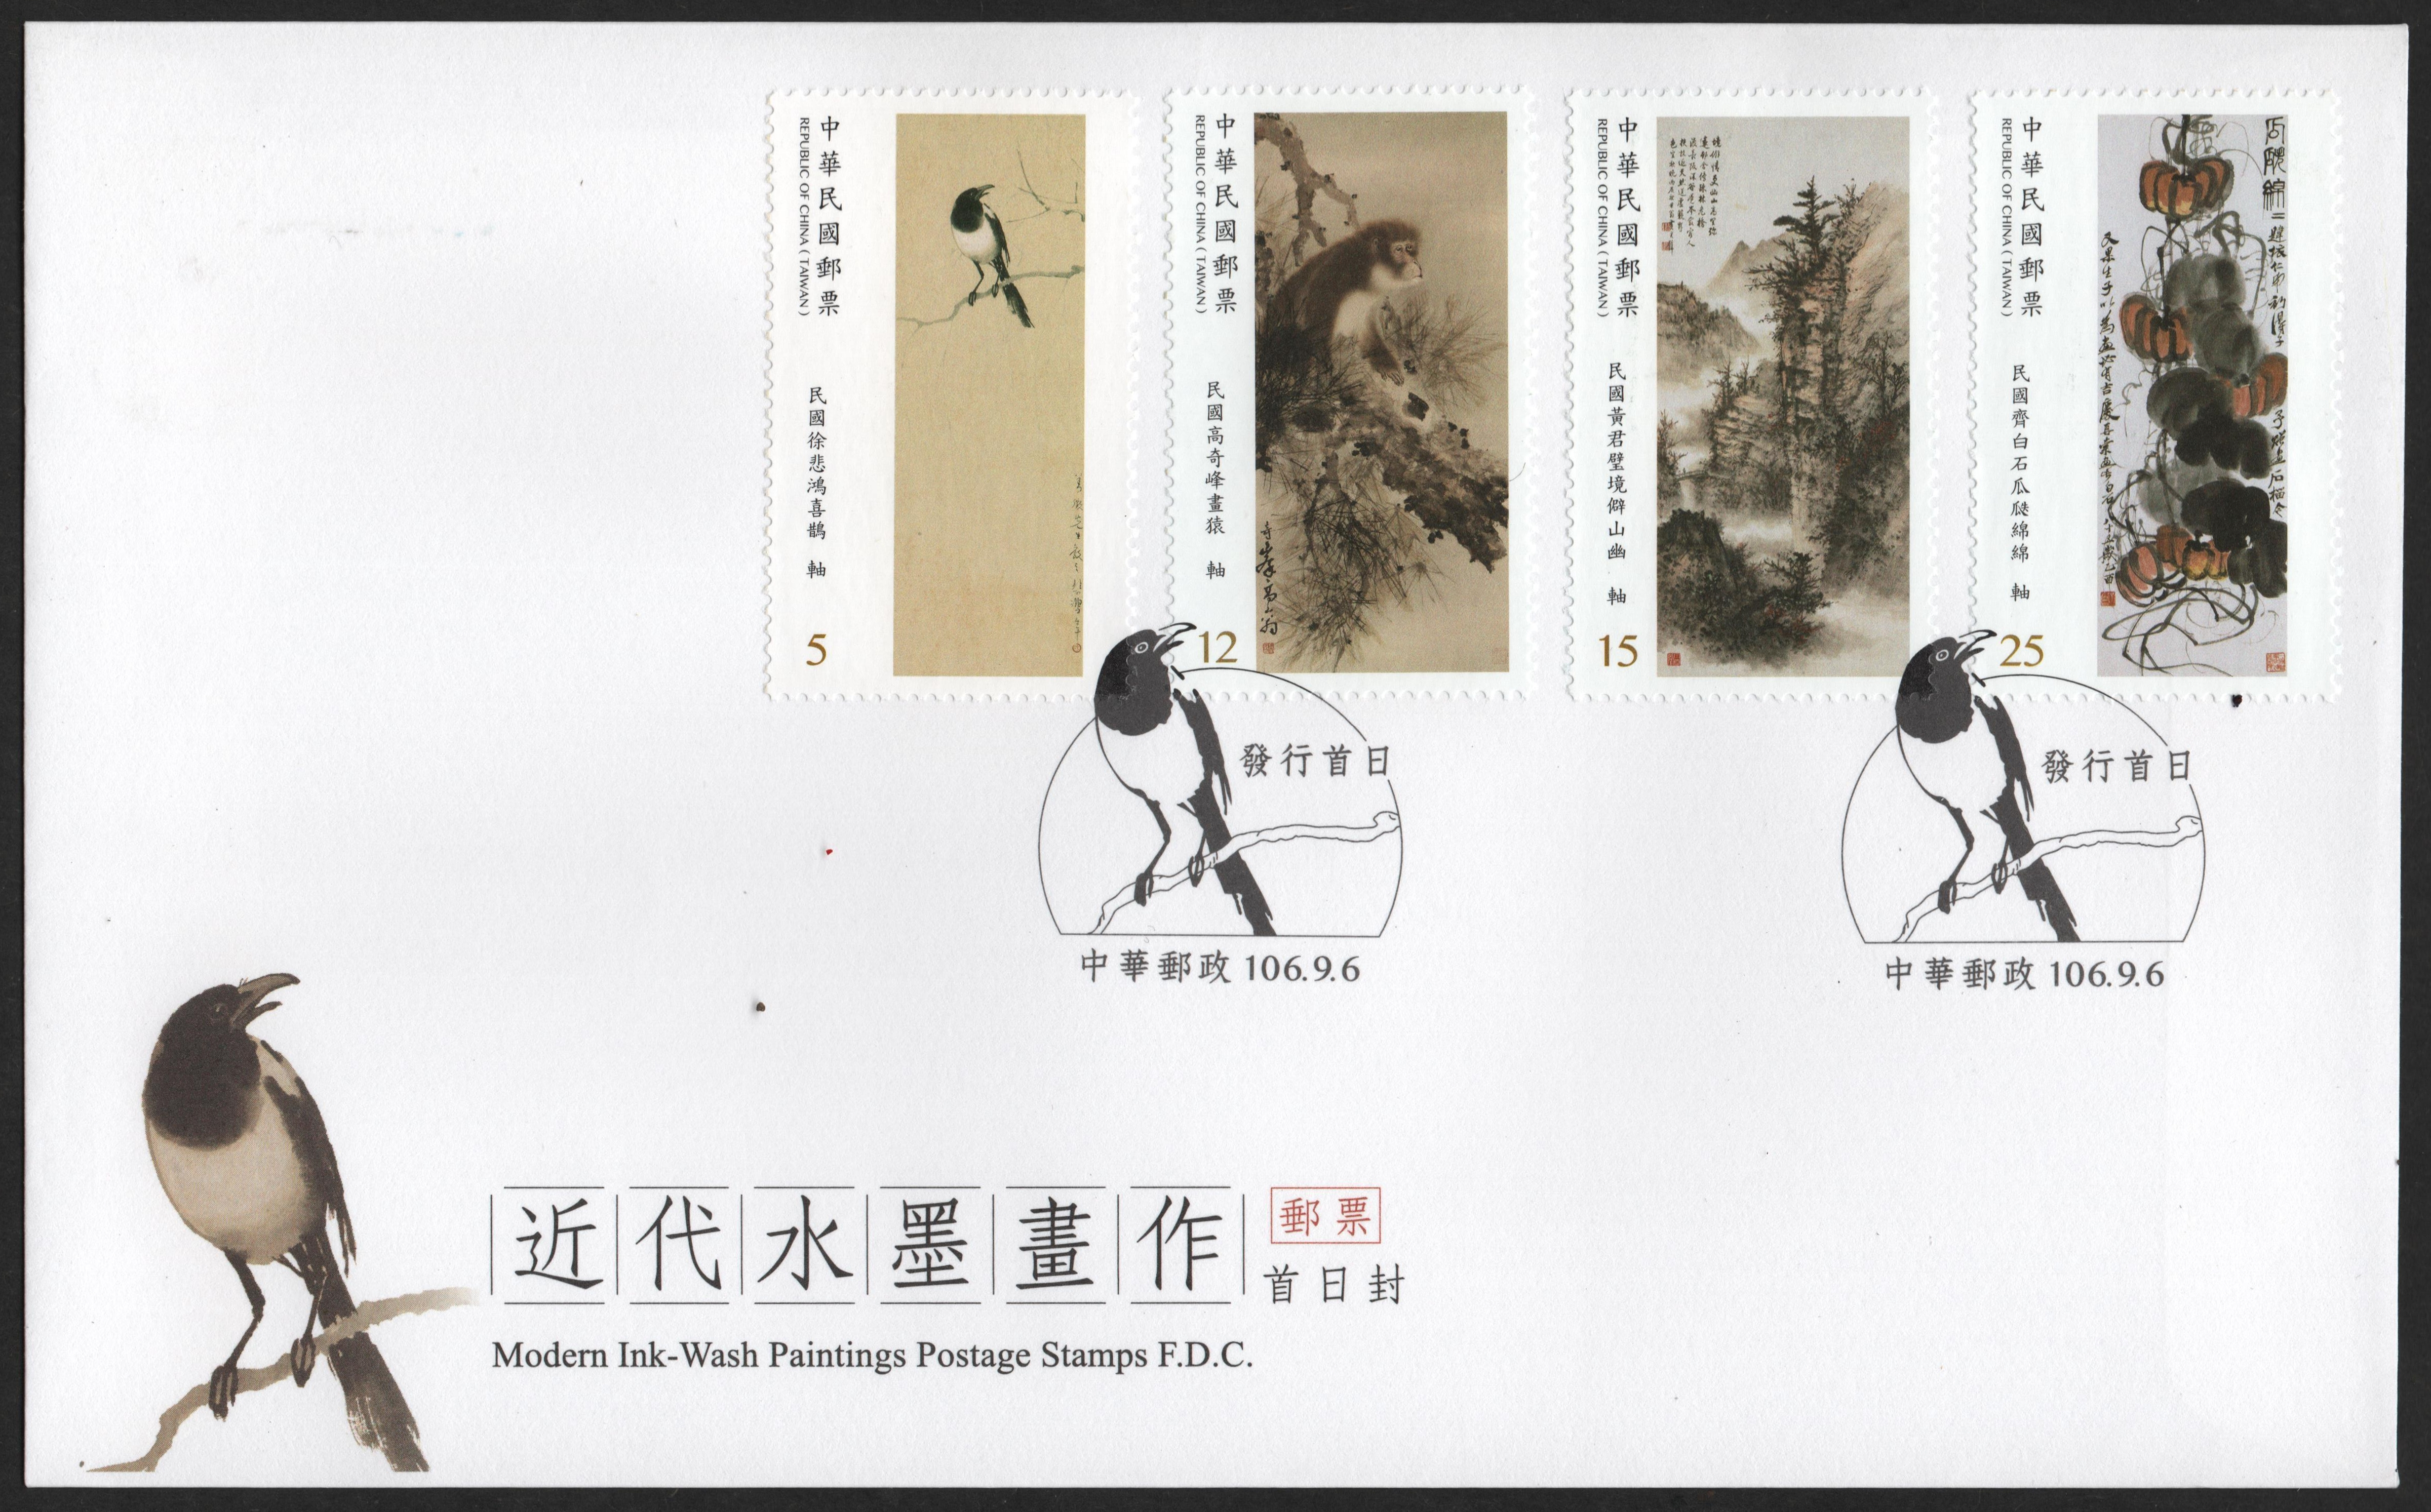 Republic of China (Taiwan) - Michel #4188-4191 (2017) official Chunghwa Post first day cover